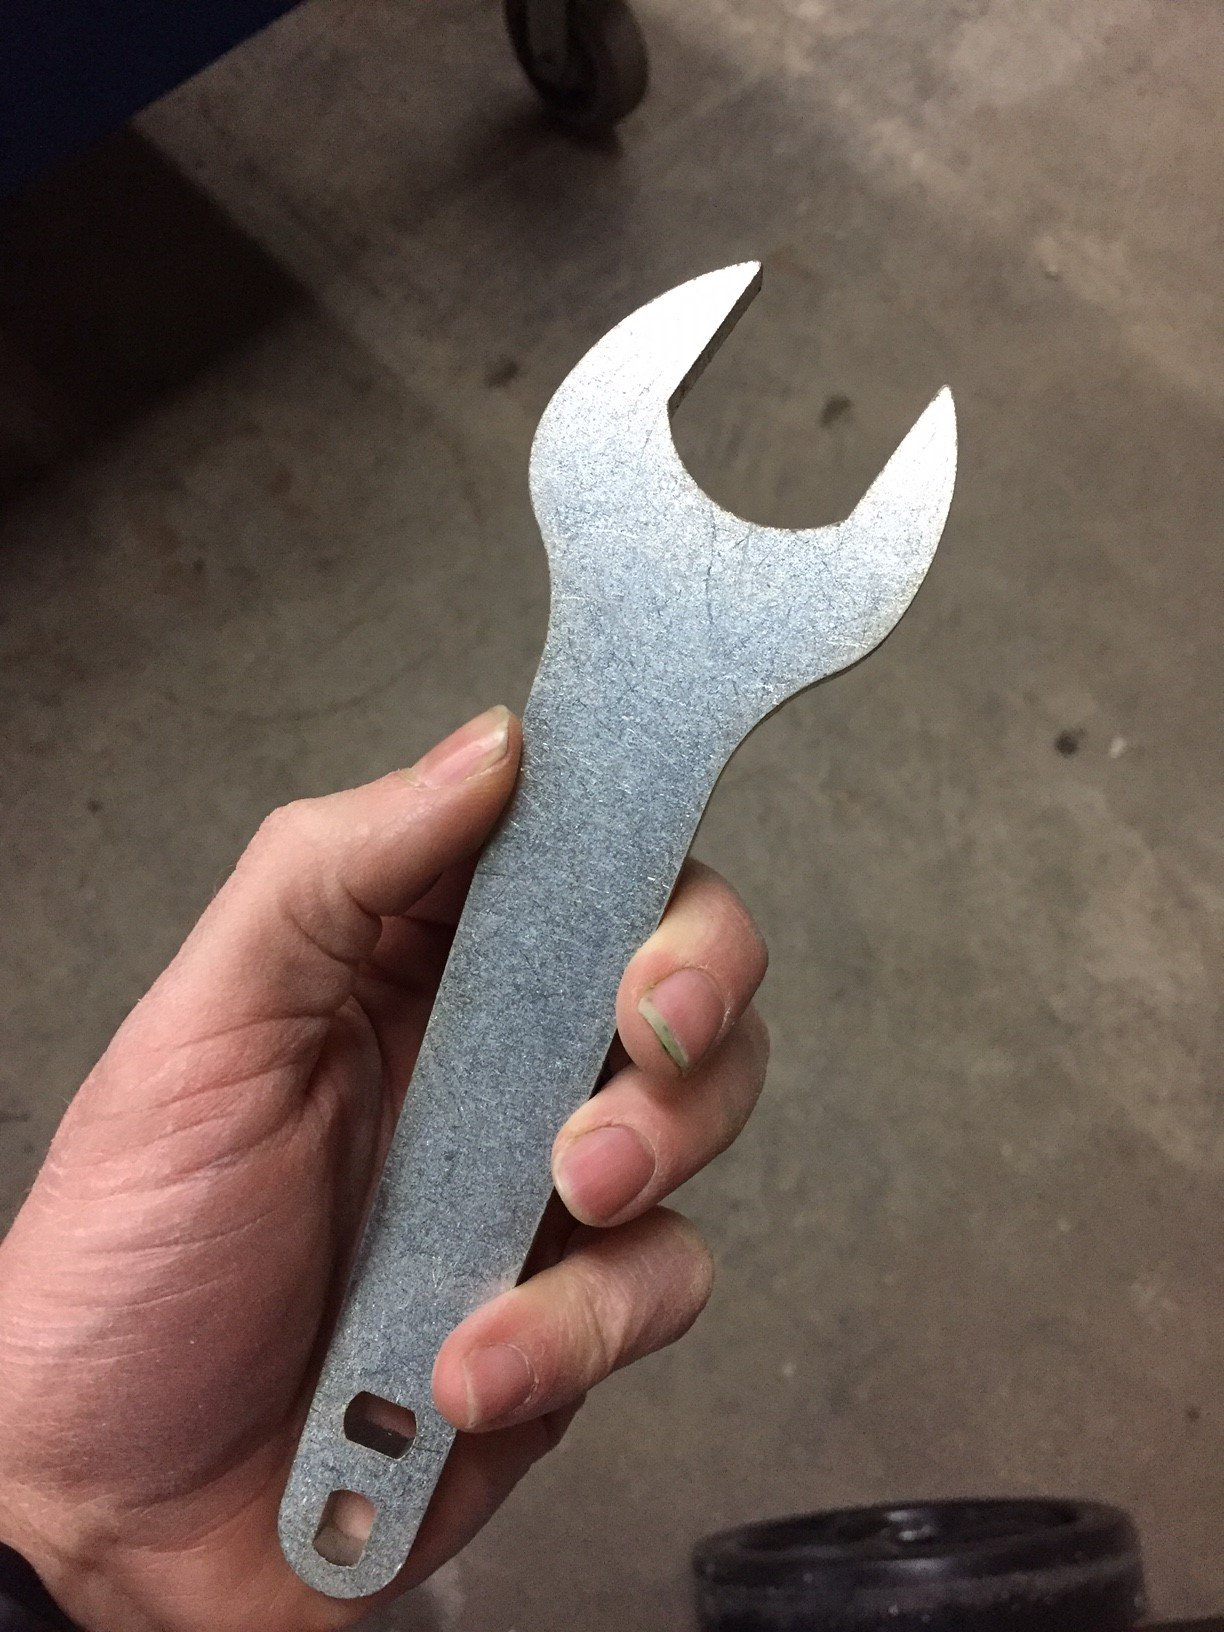 FWF Heavy Duty Oxygen Cylinder Tank Wrench for ( D, E, H OR T STYLE) LARGE CYLINDERS MADE IN USE